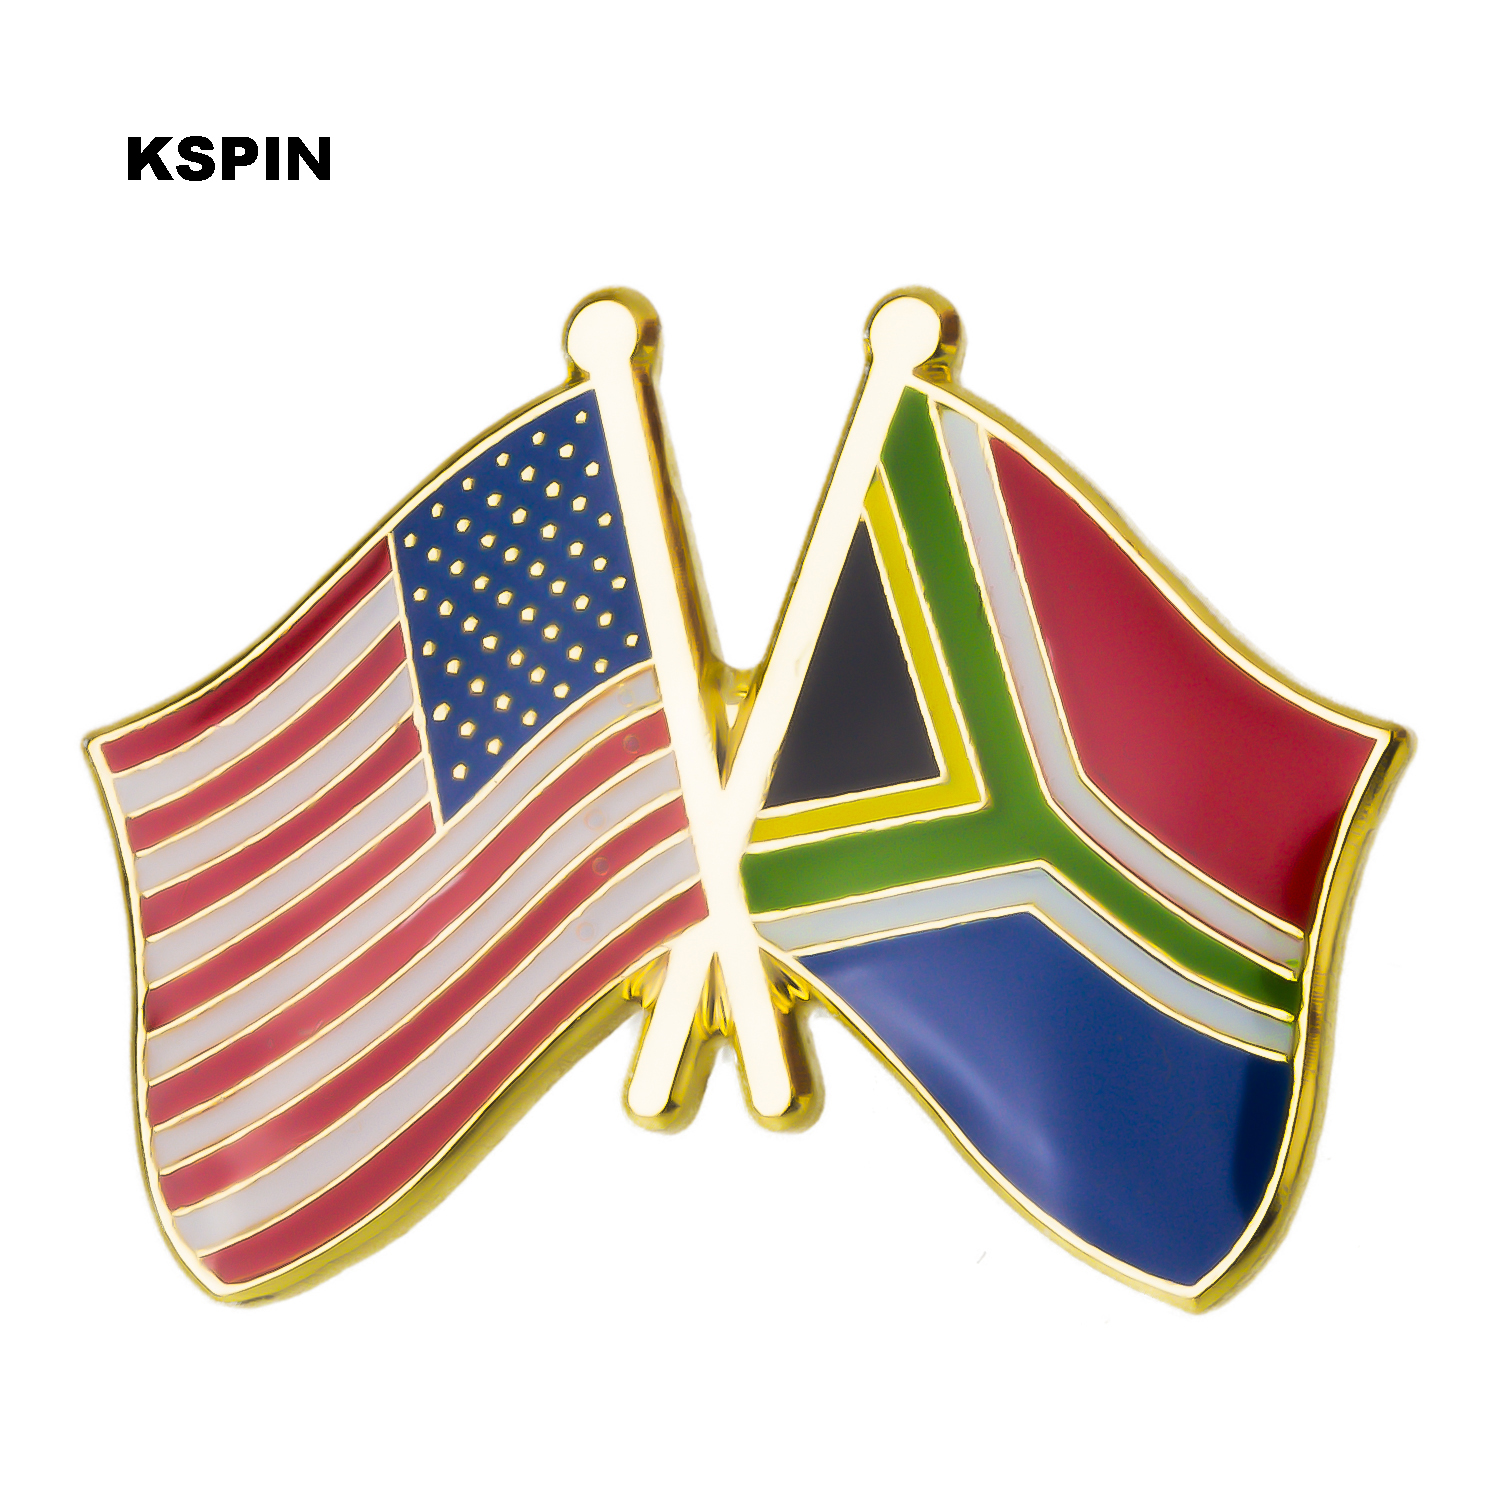 Badges Apparel Sewing & Fabric U.s.a South Africa Friendship Flag Metal Pin Badges For Clothes In Badges Button On Brooch Plating Brooches For Jewelry Skillful Manufacture